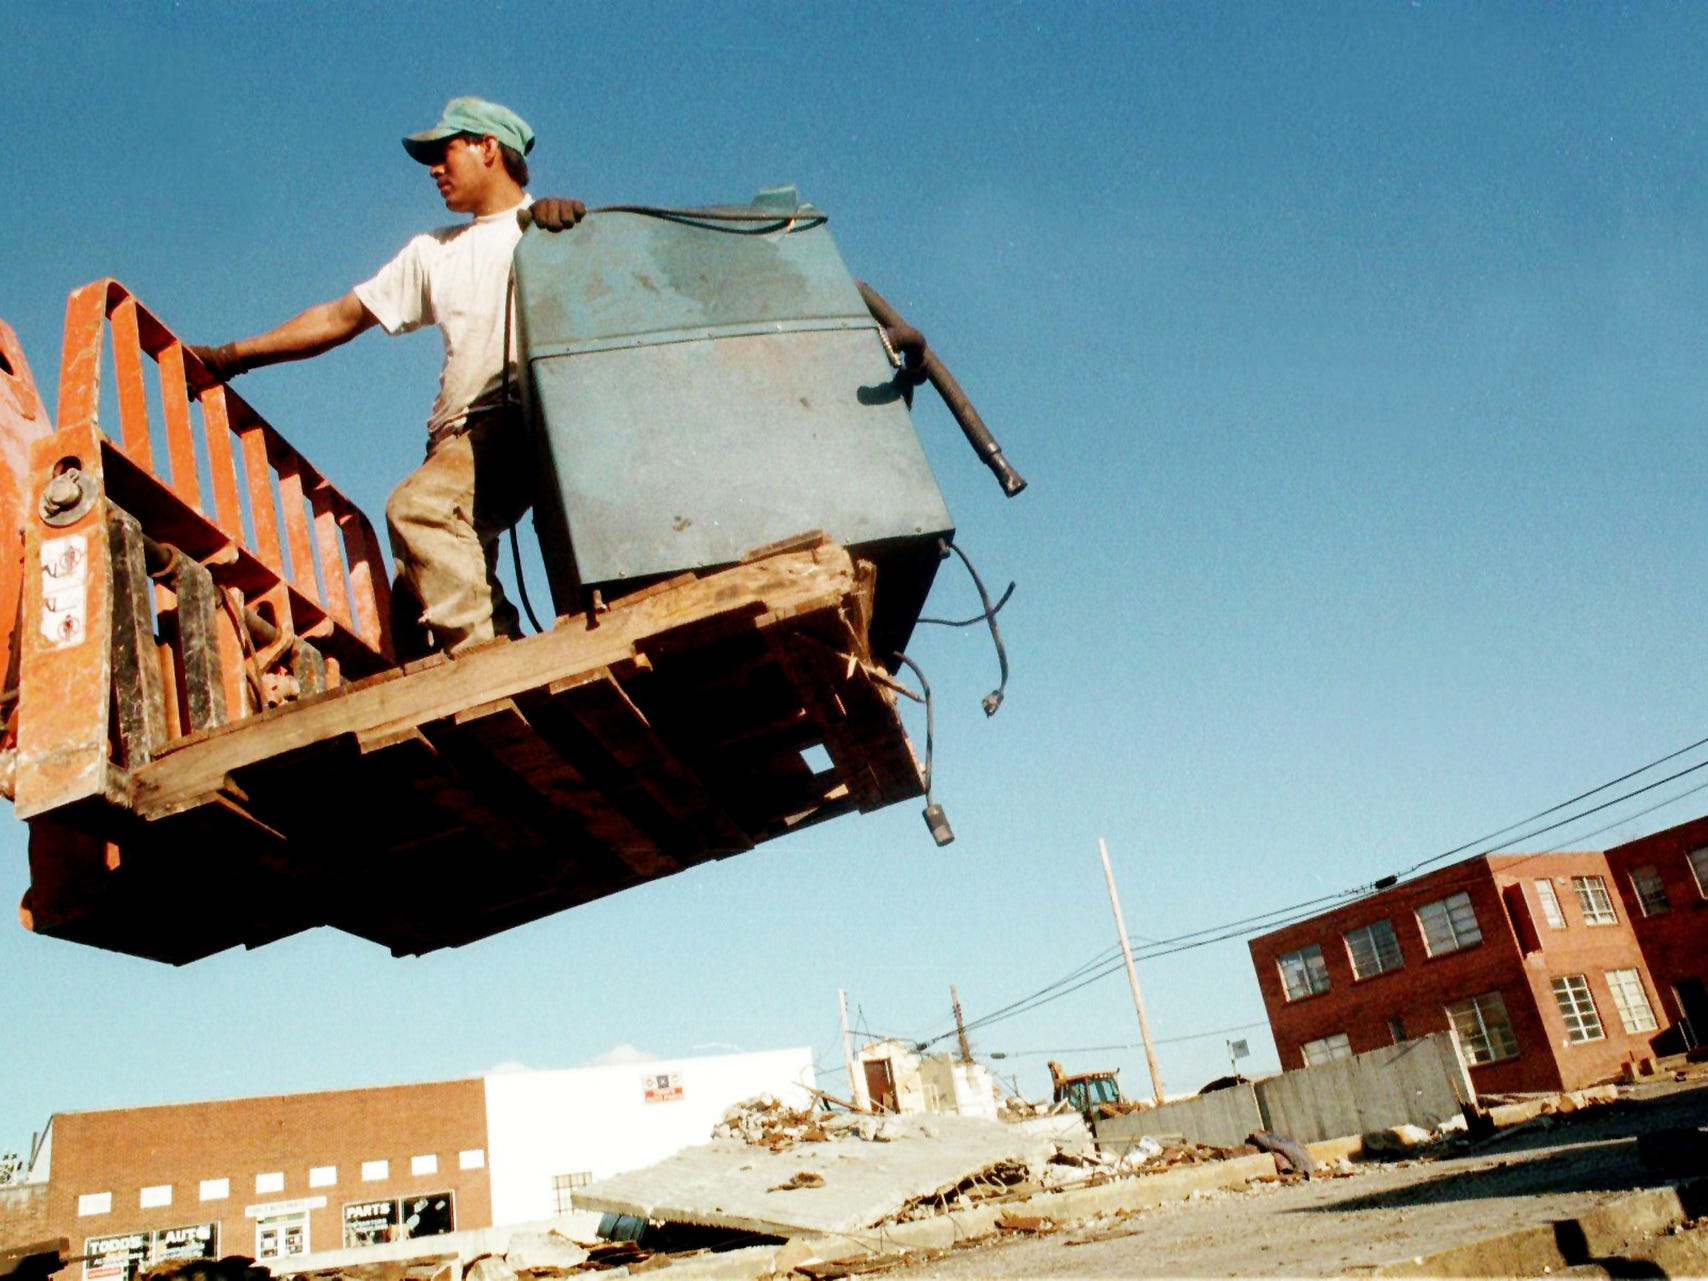 Miguel Taeo with Done Right Contractors of Nashville rides a lift with a piece of machinery being taken from a building formerly used by Enco materials March 7, 1997. The contractors were taking the building down and loading the materials onto a railcar to be transported to Detroit where it will be re-assembled. Enco is the latest business to be moving to make way for the new football stadium.